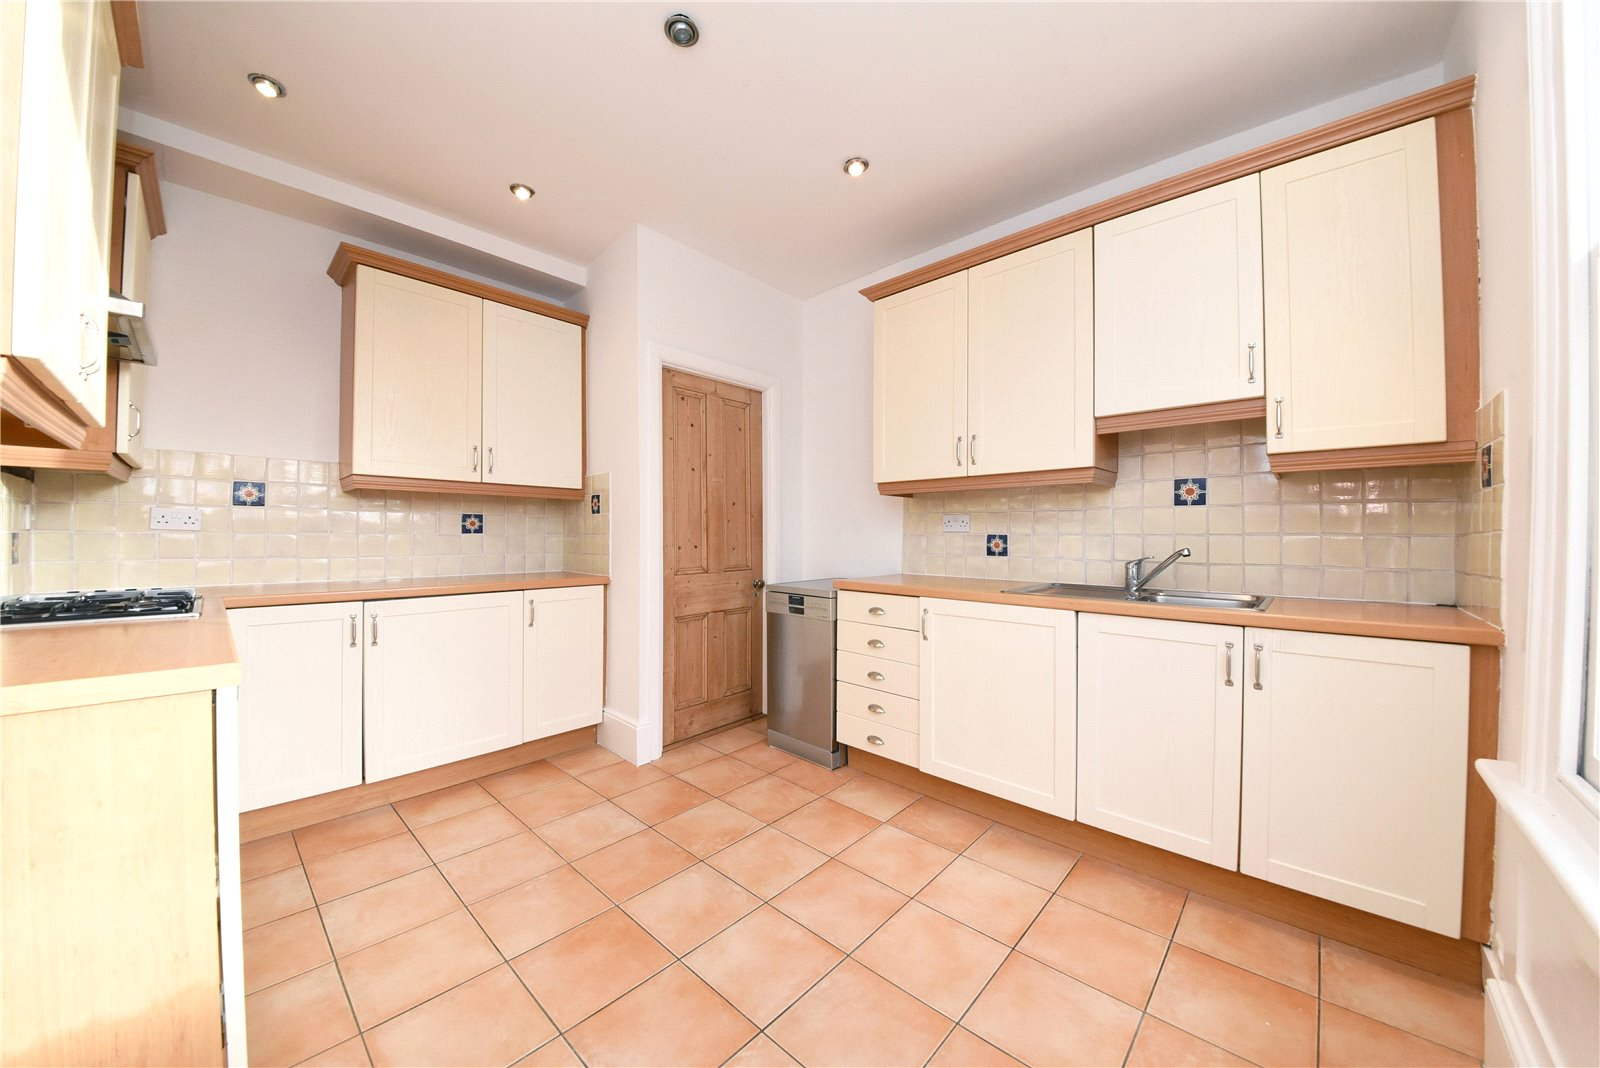 3 bed apartment to rent in Wood Street, High Barnet  - Property Image 7